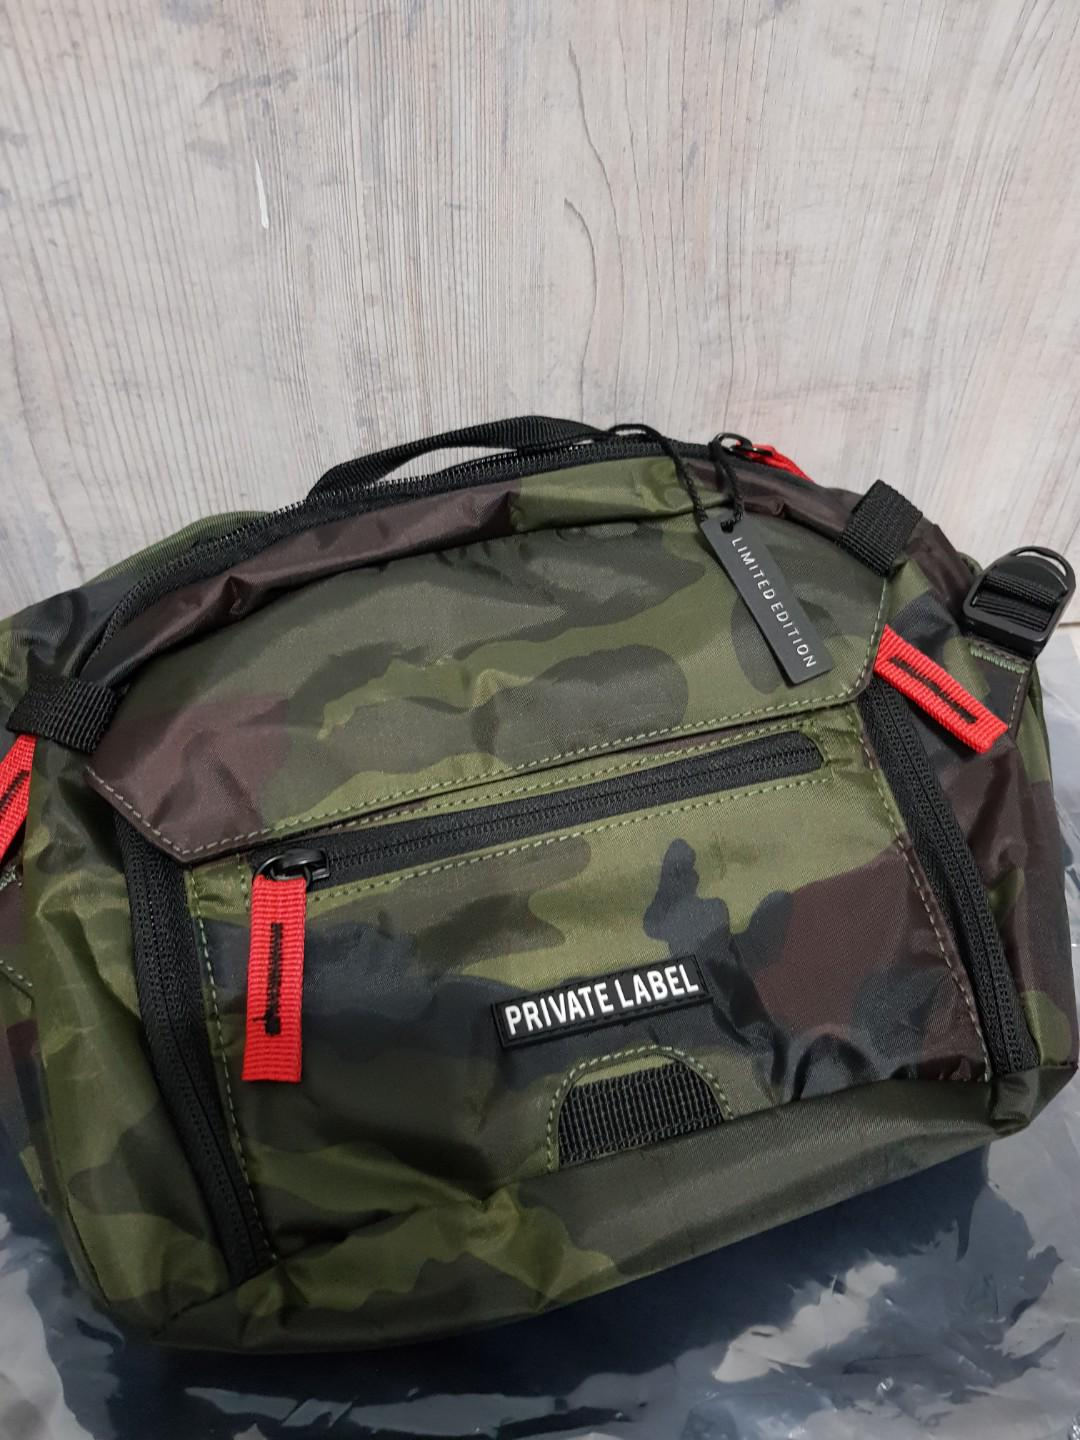 It is an image of Inventive Private Label Waist Bag